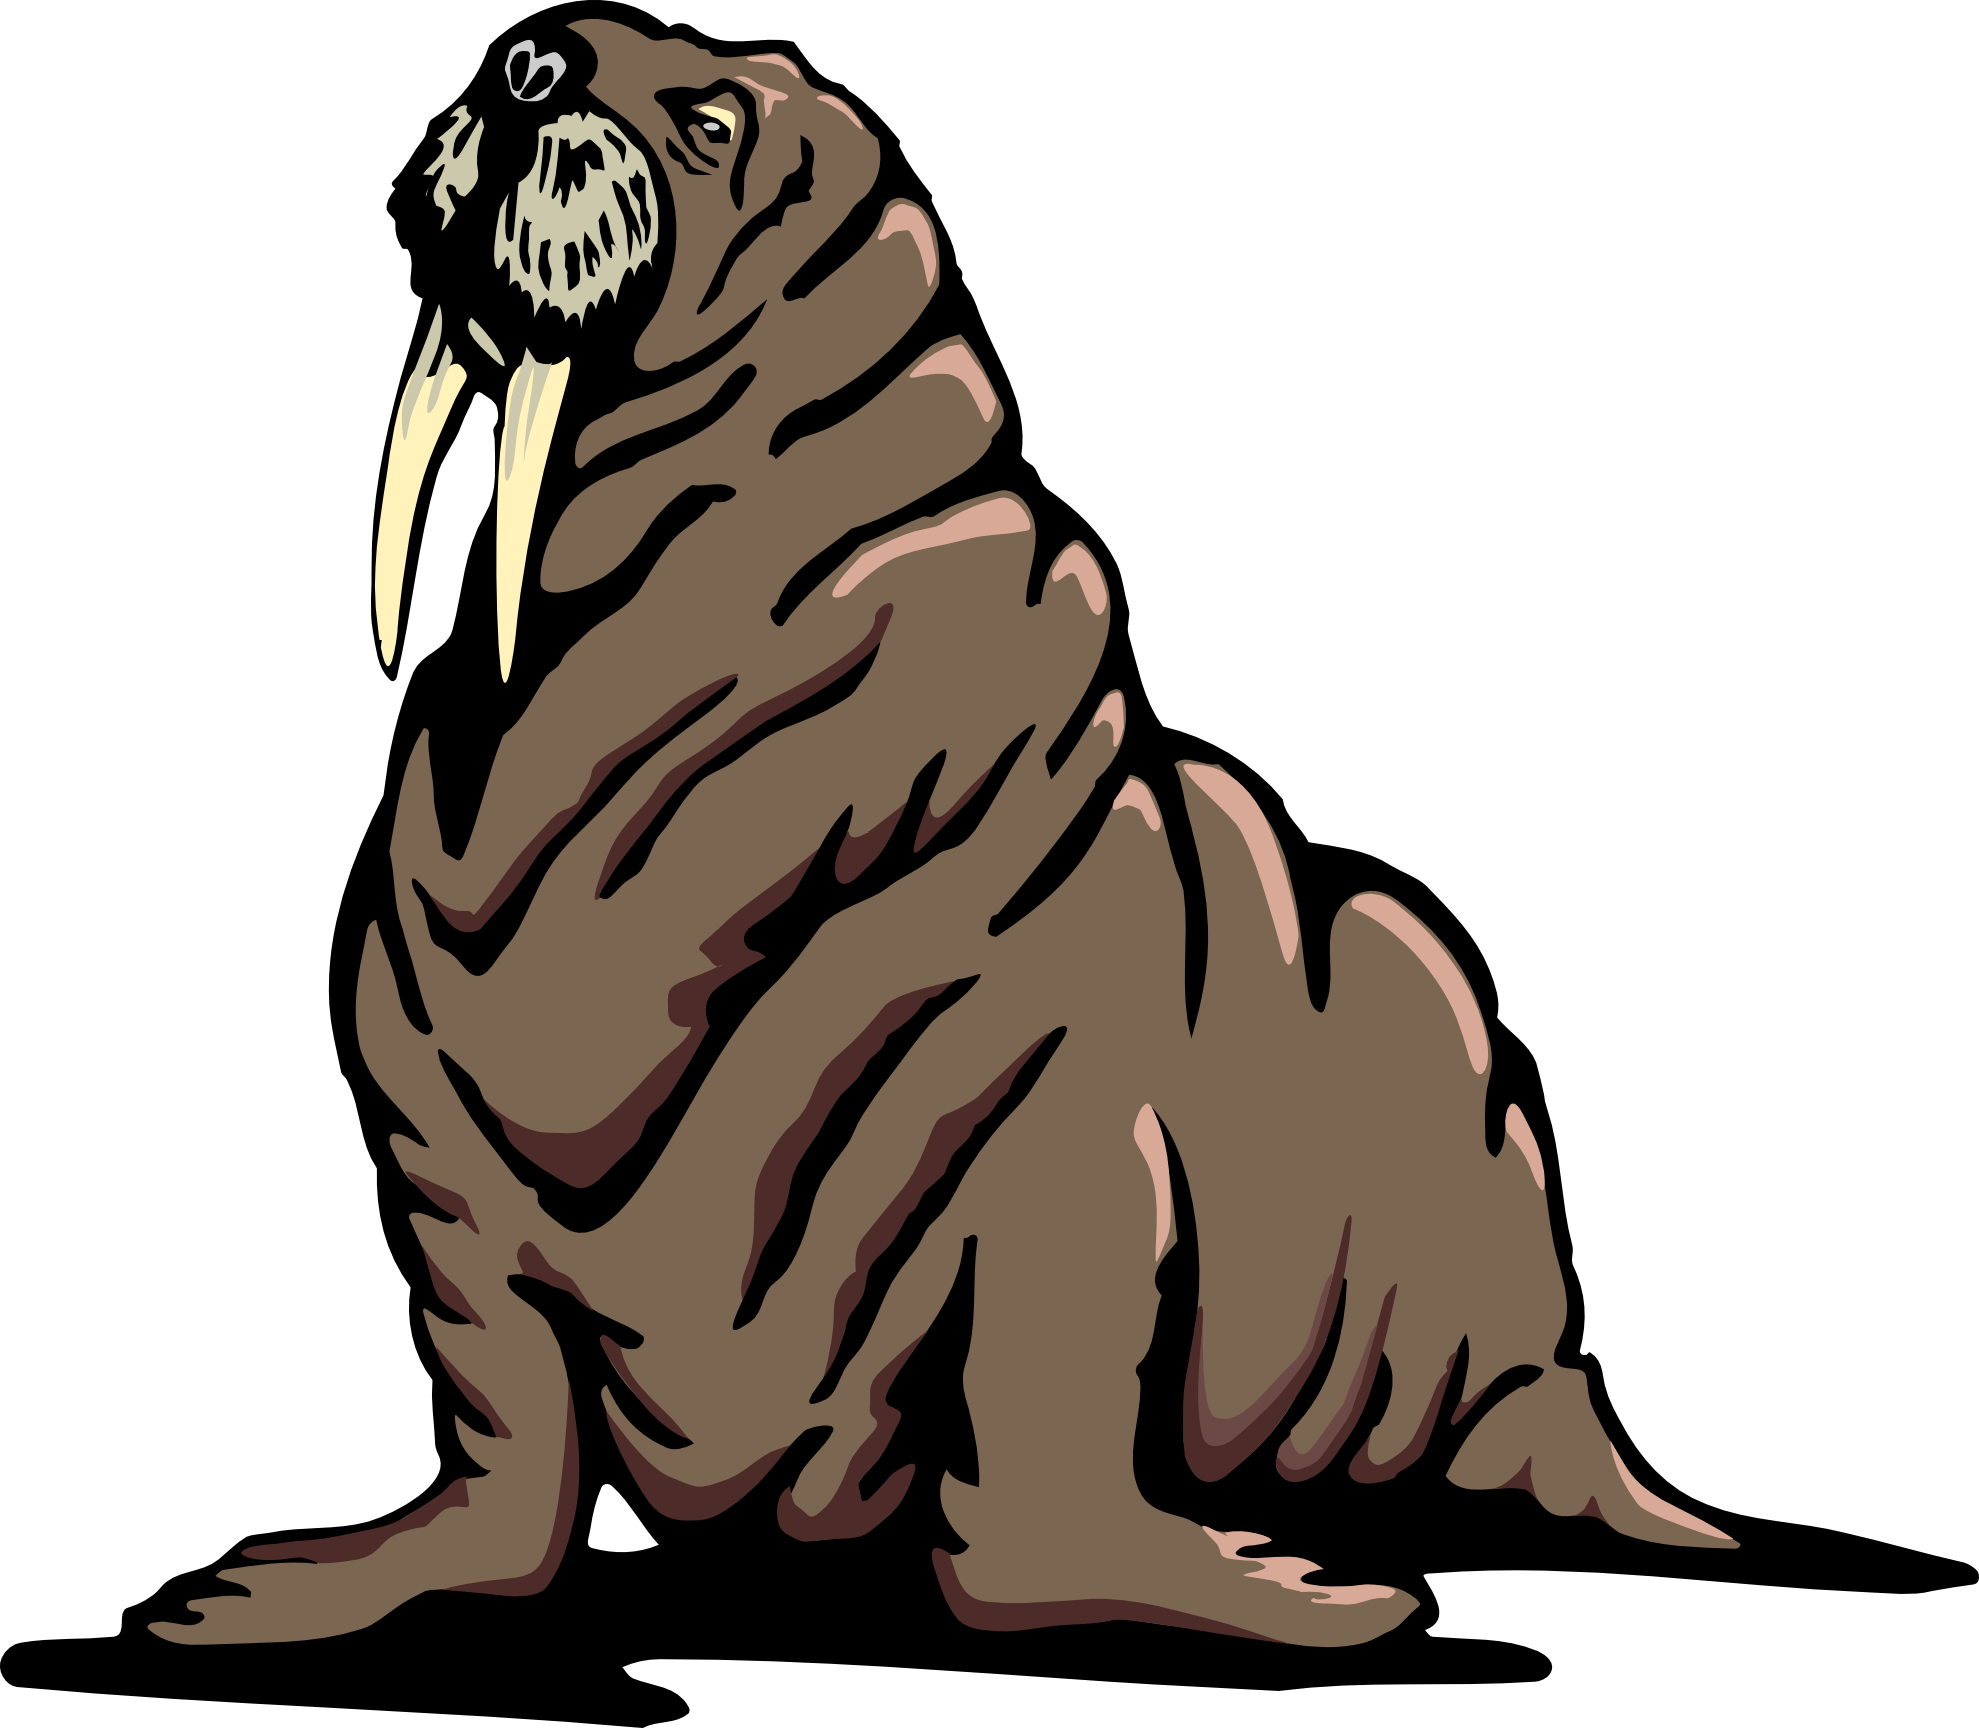 Free Walrus Cliparts, Download Free Clip Art, Free Clip Art on.